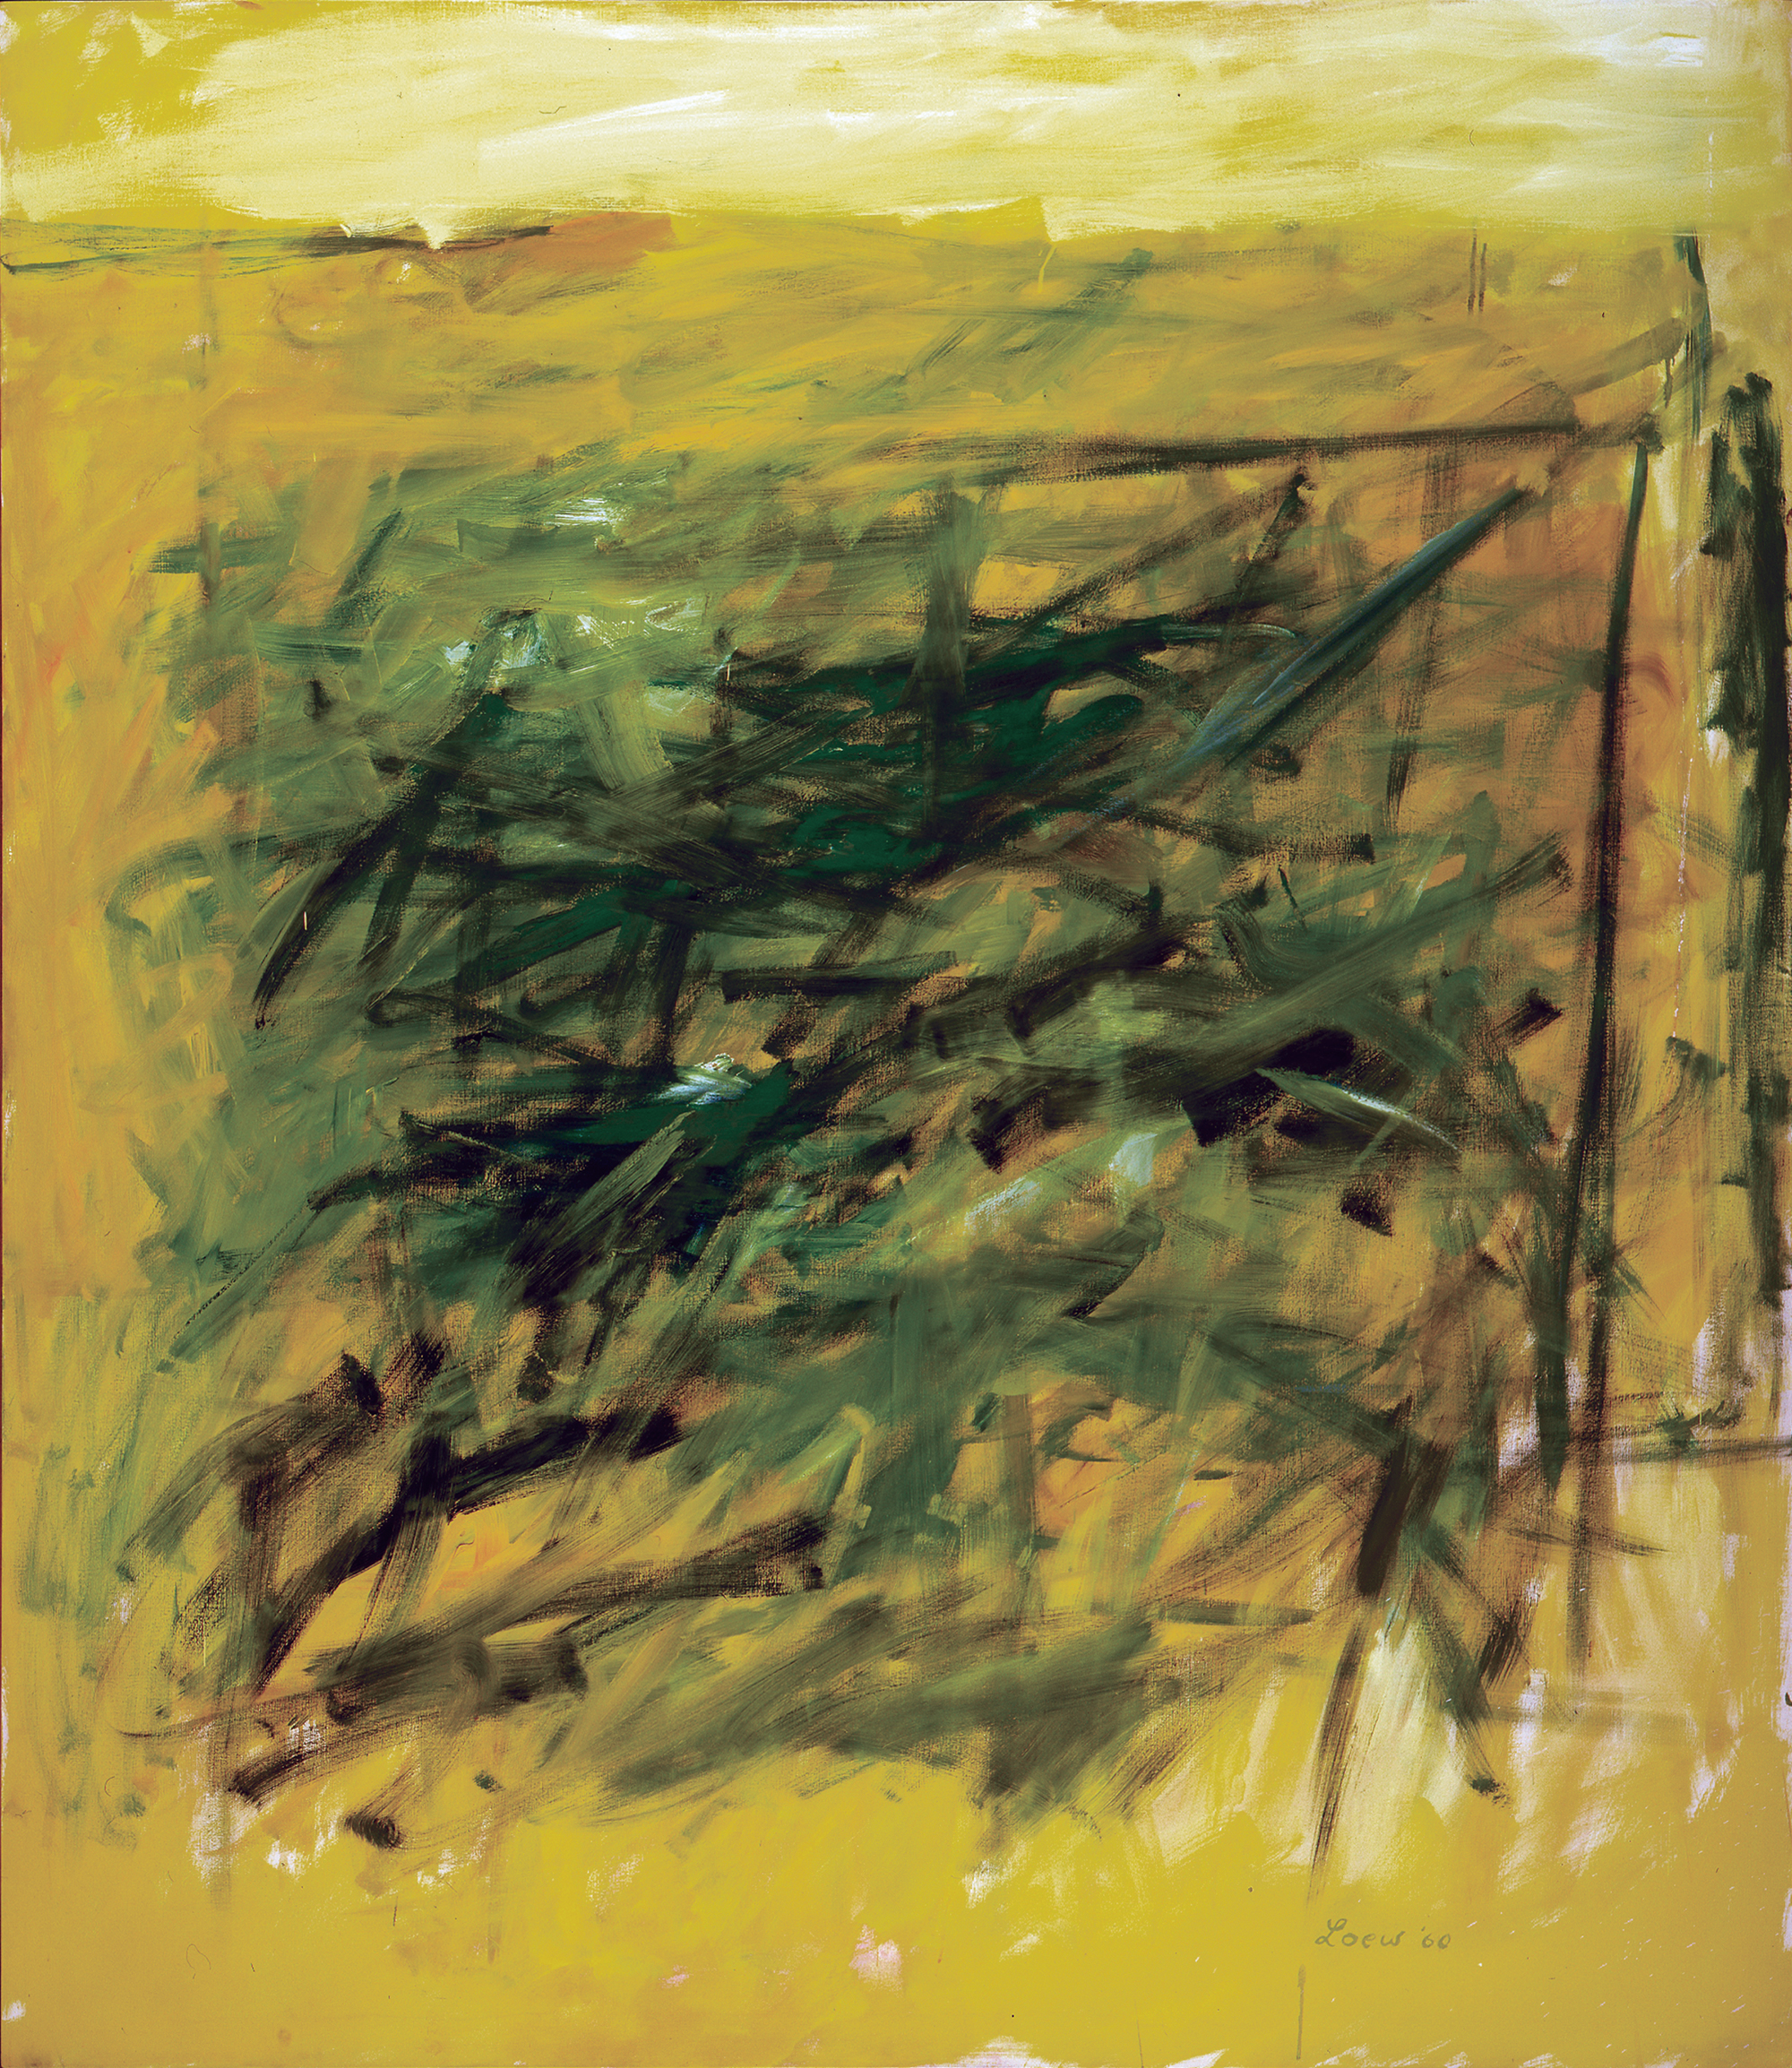 I Want You Green, 1960, oil on canvas, 75 1/4 x 66 inches